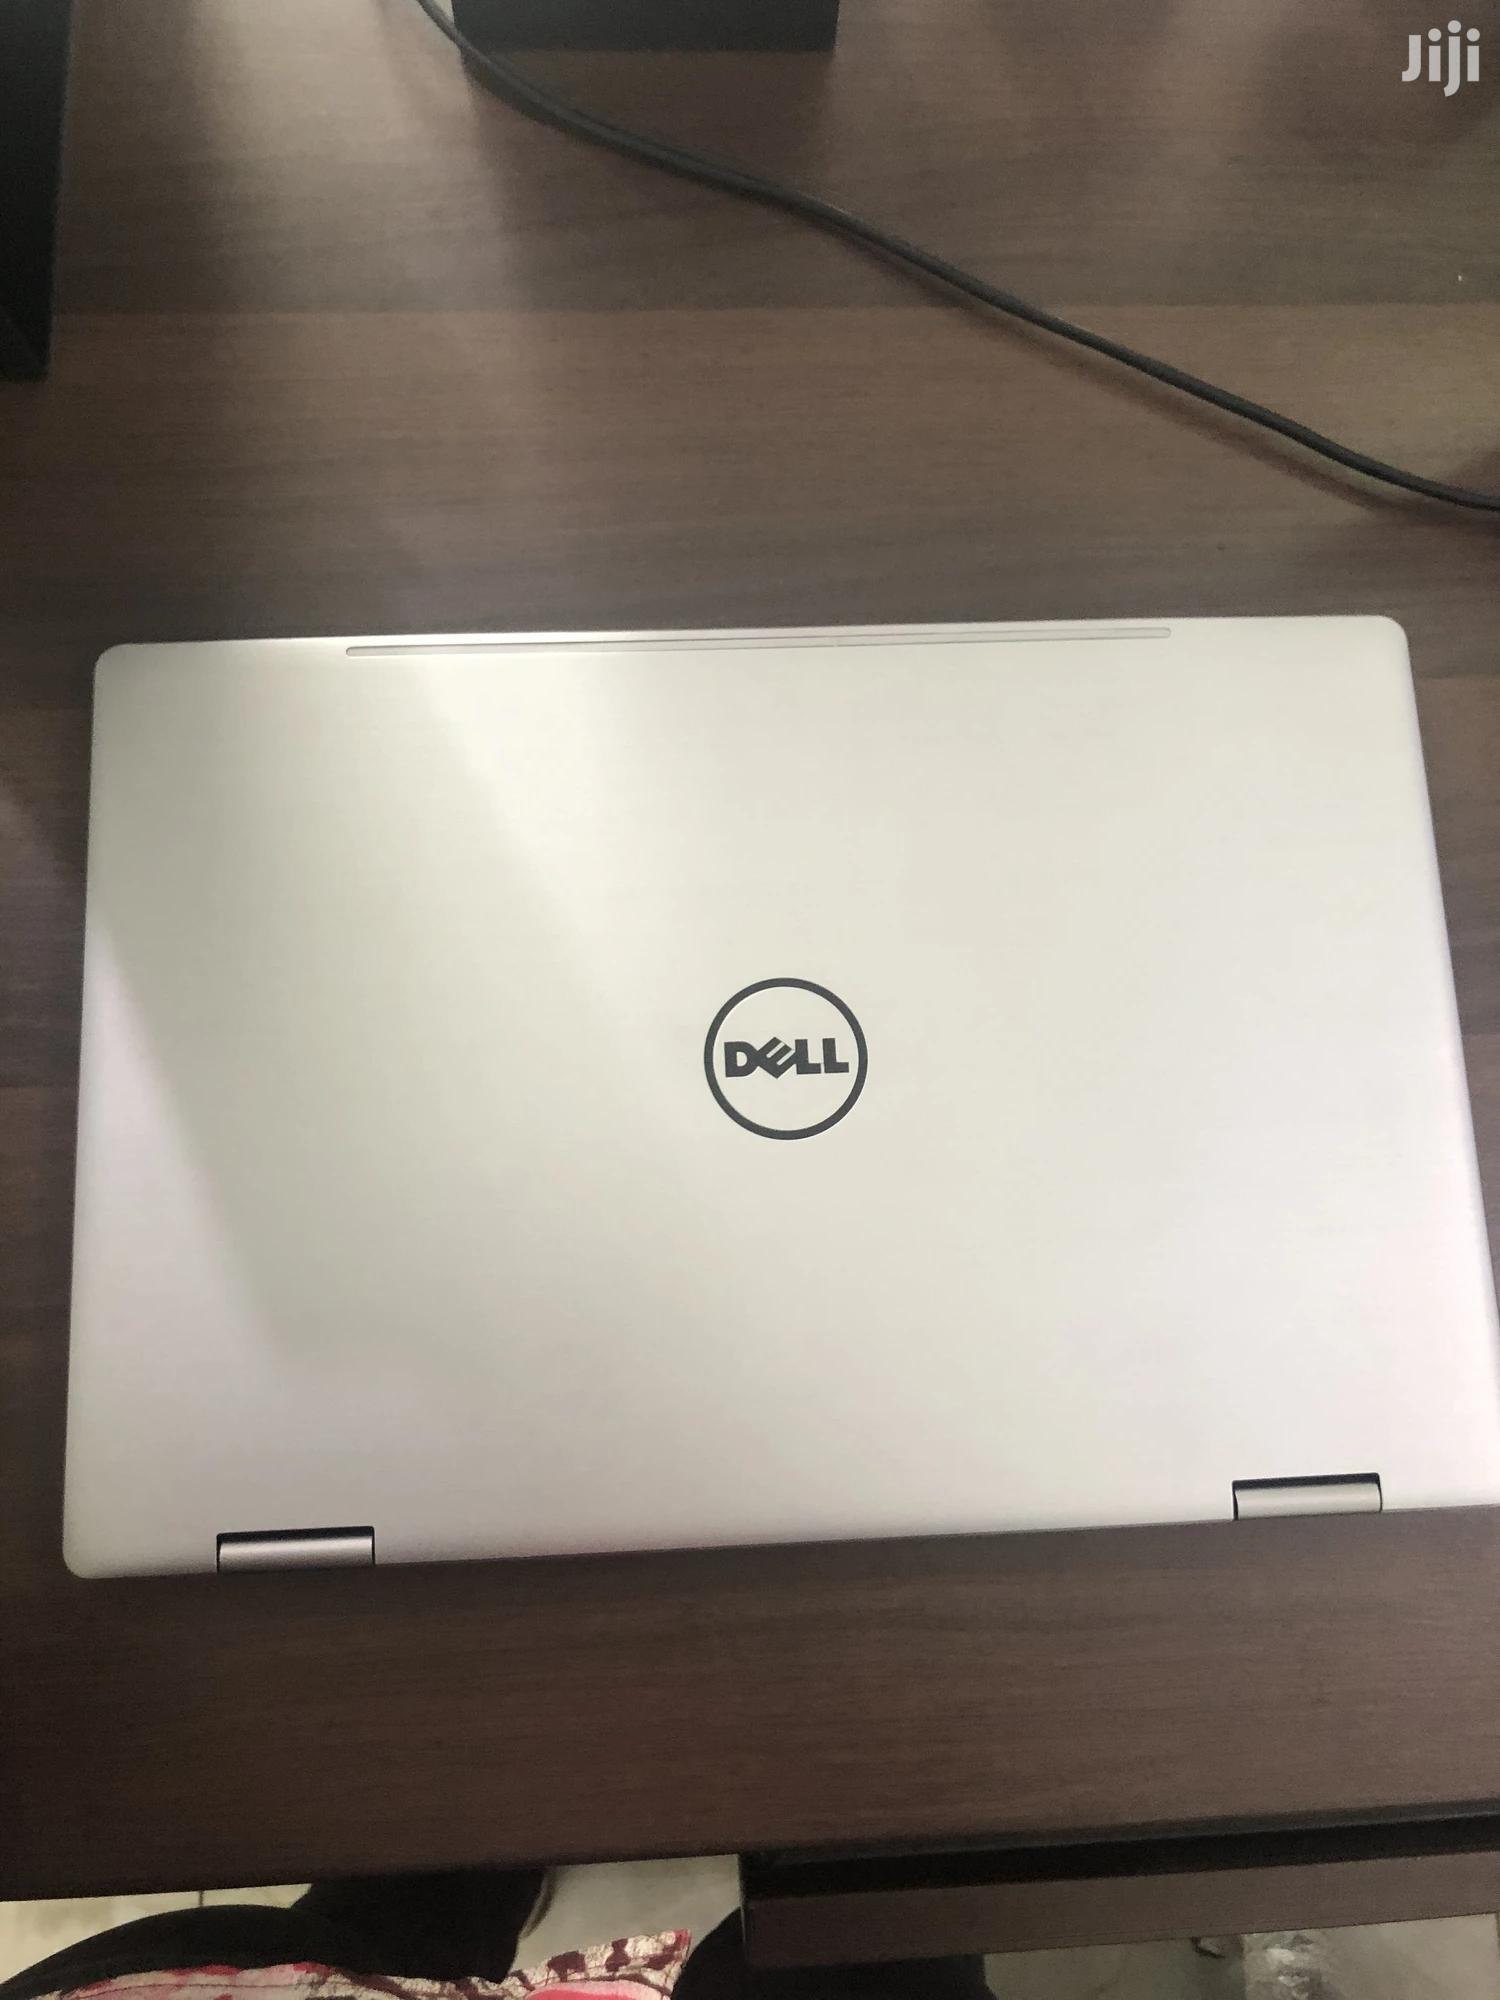 Laptop Dell Inspiron 15 7577 12GB Intel Core i7 SSD 512GB | Laptops & Computers for sale in Adabraka, Greater Accra, Ghana